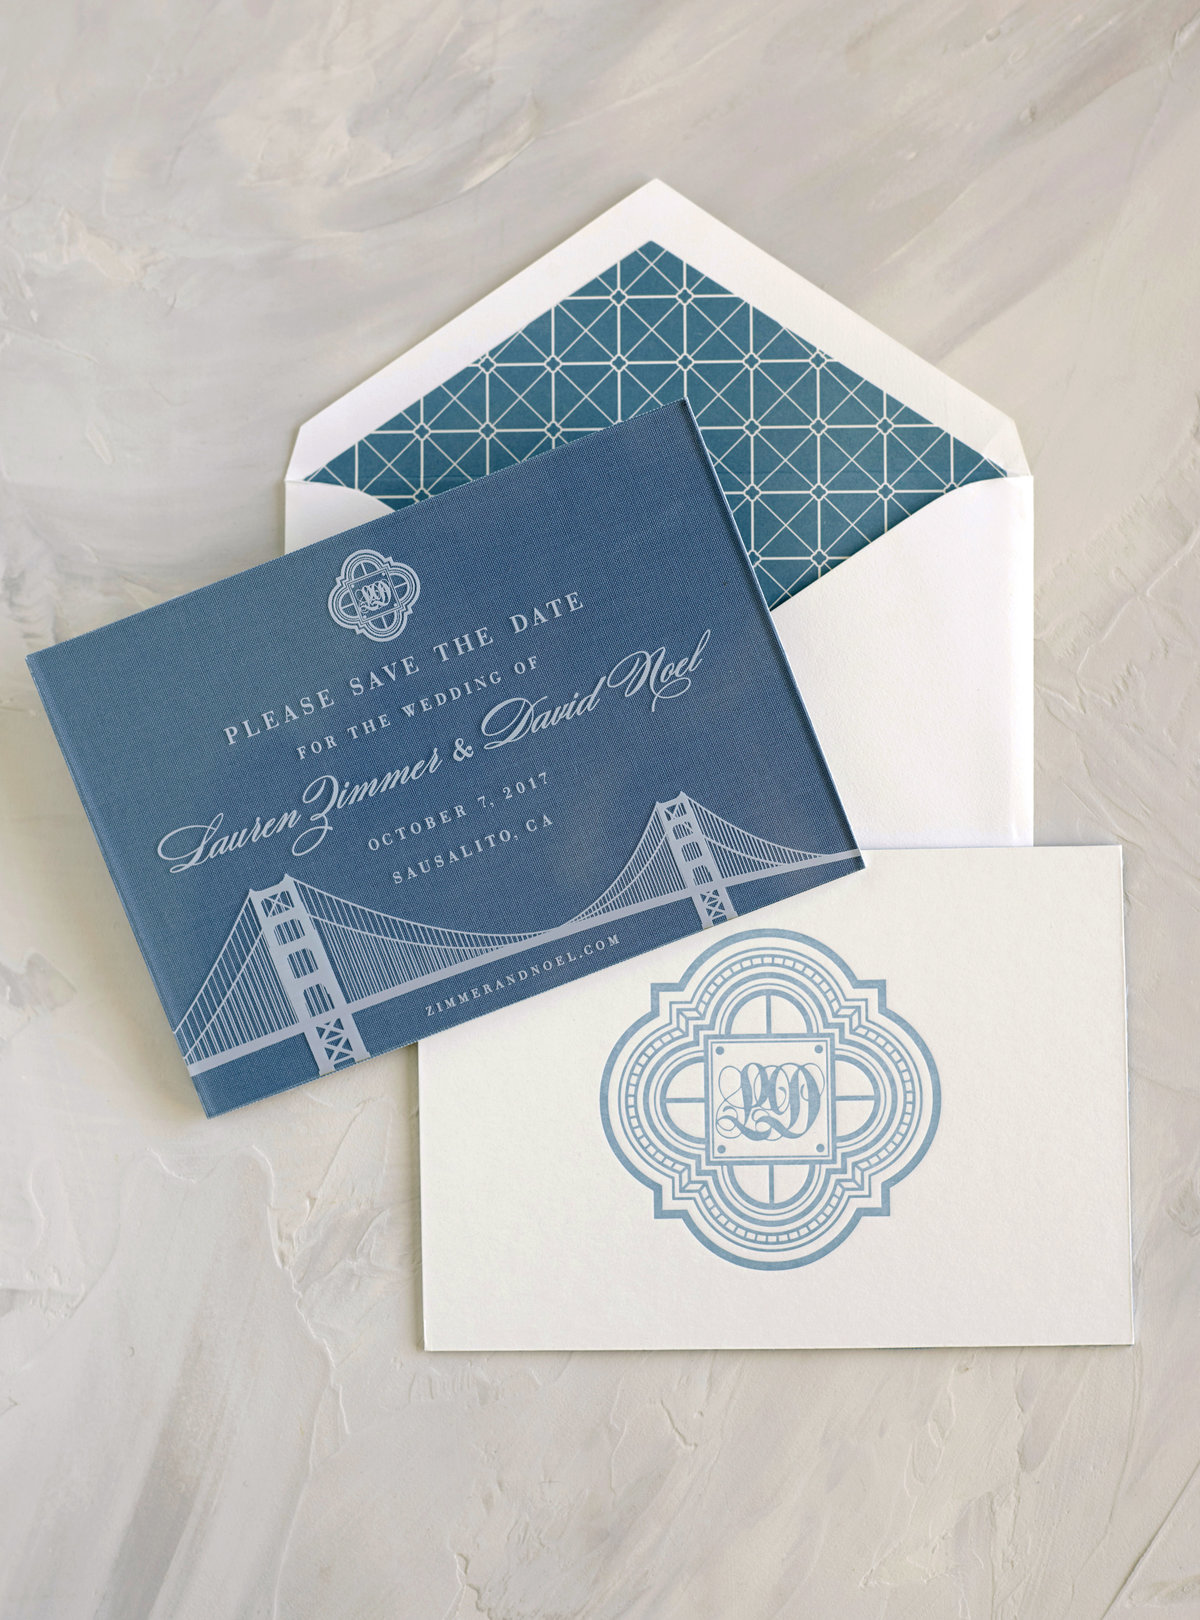 Blue and white save the date for Cavallo Point Wedding by Jenny Schneider Events.